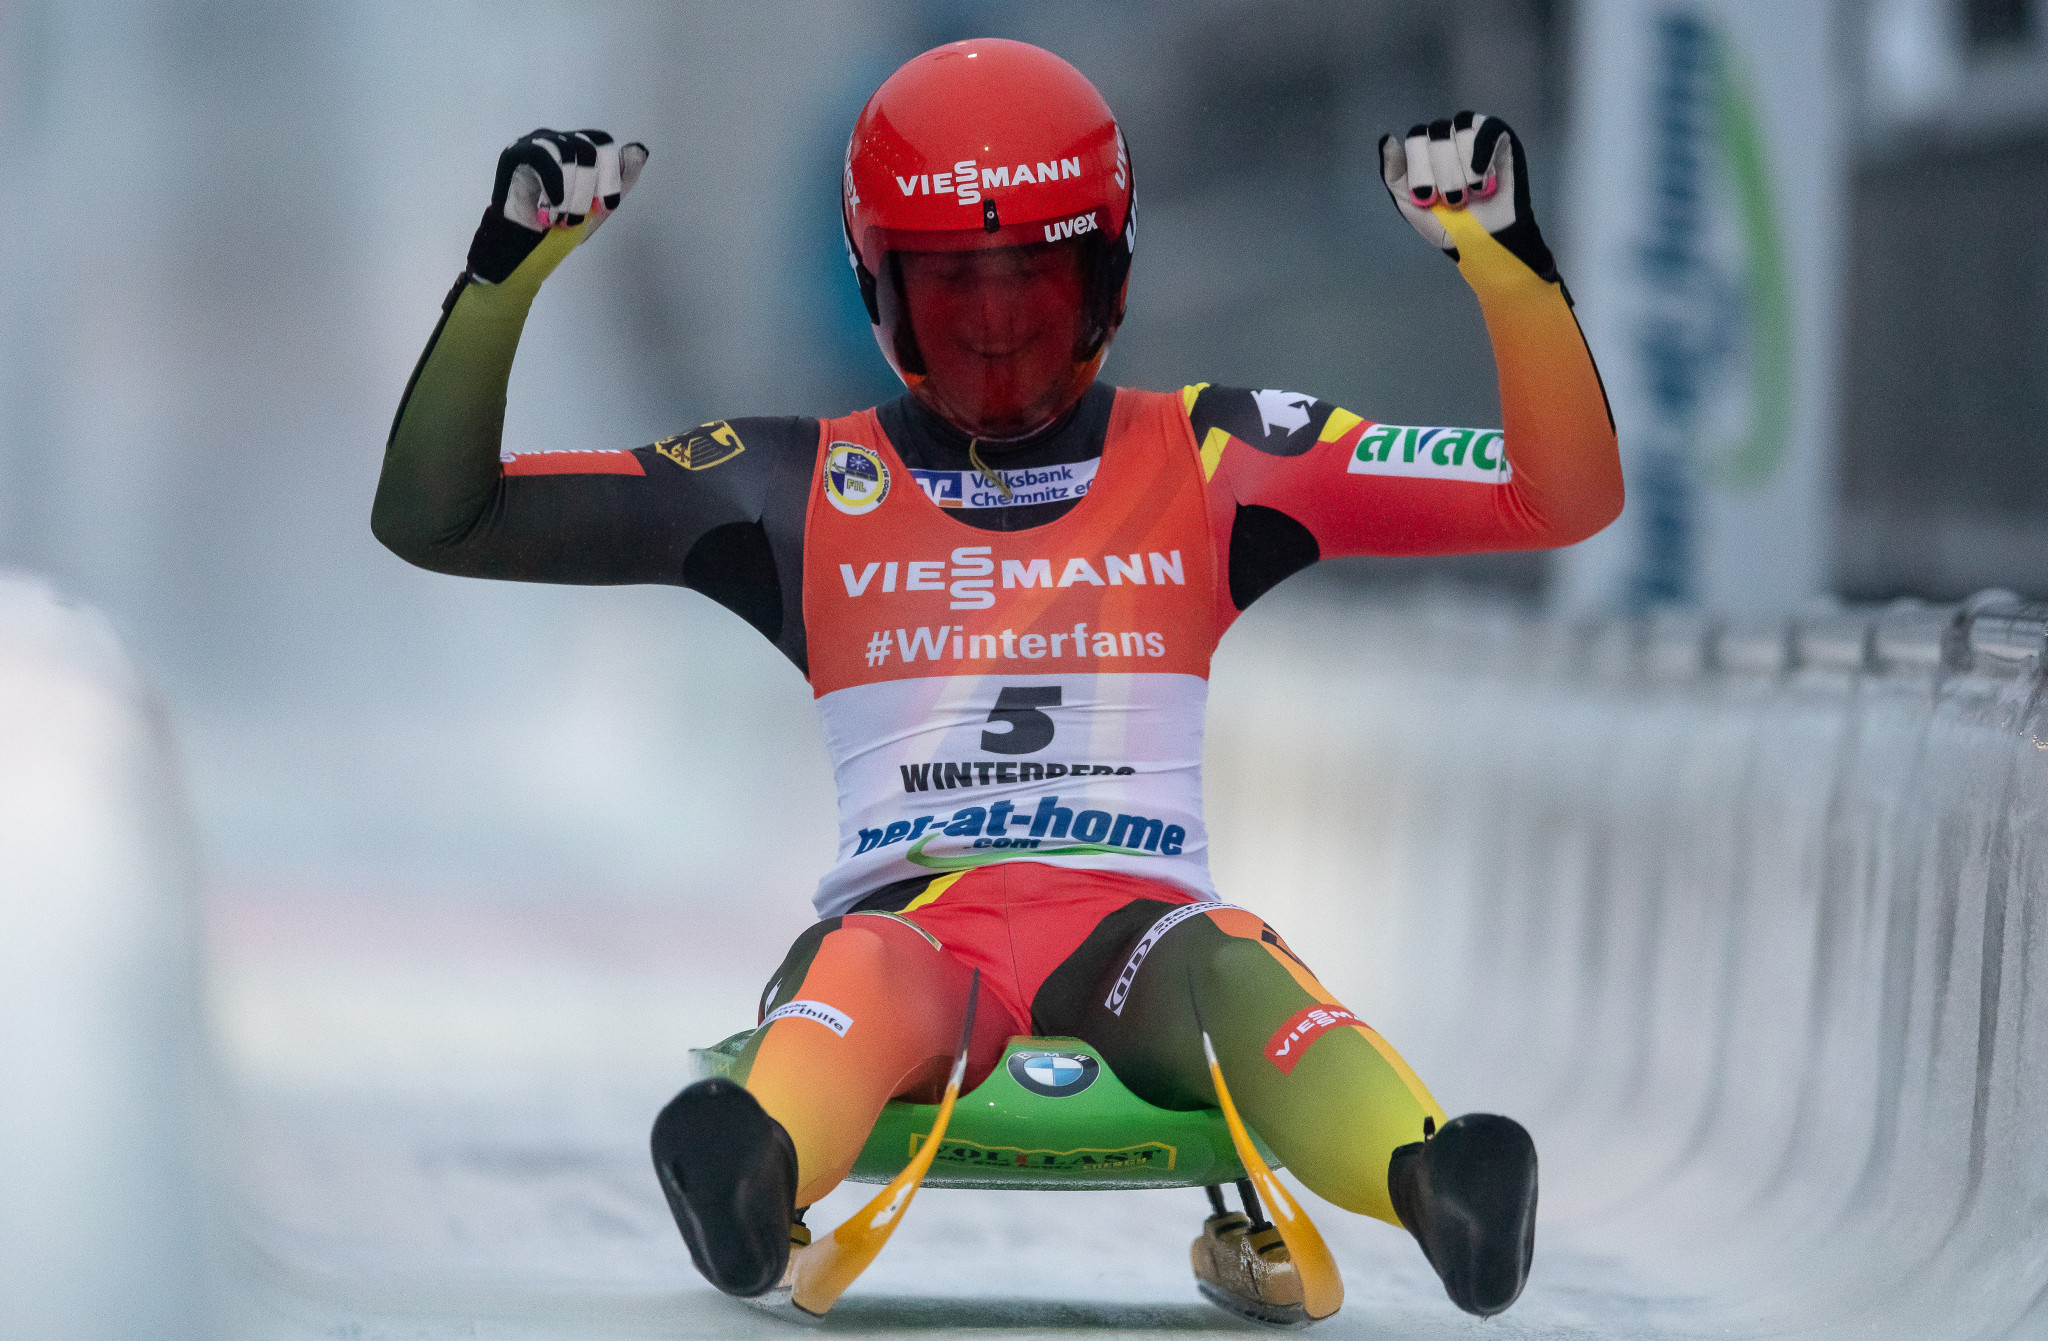 Taubitz aiming to follow in footsteps of Geisenberger during Luge World Cup season